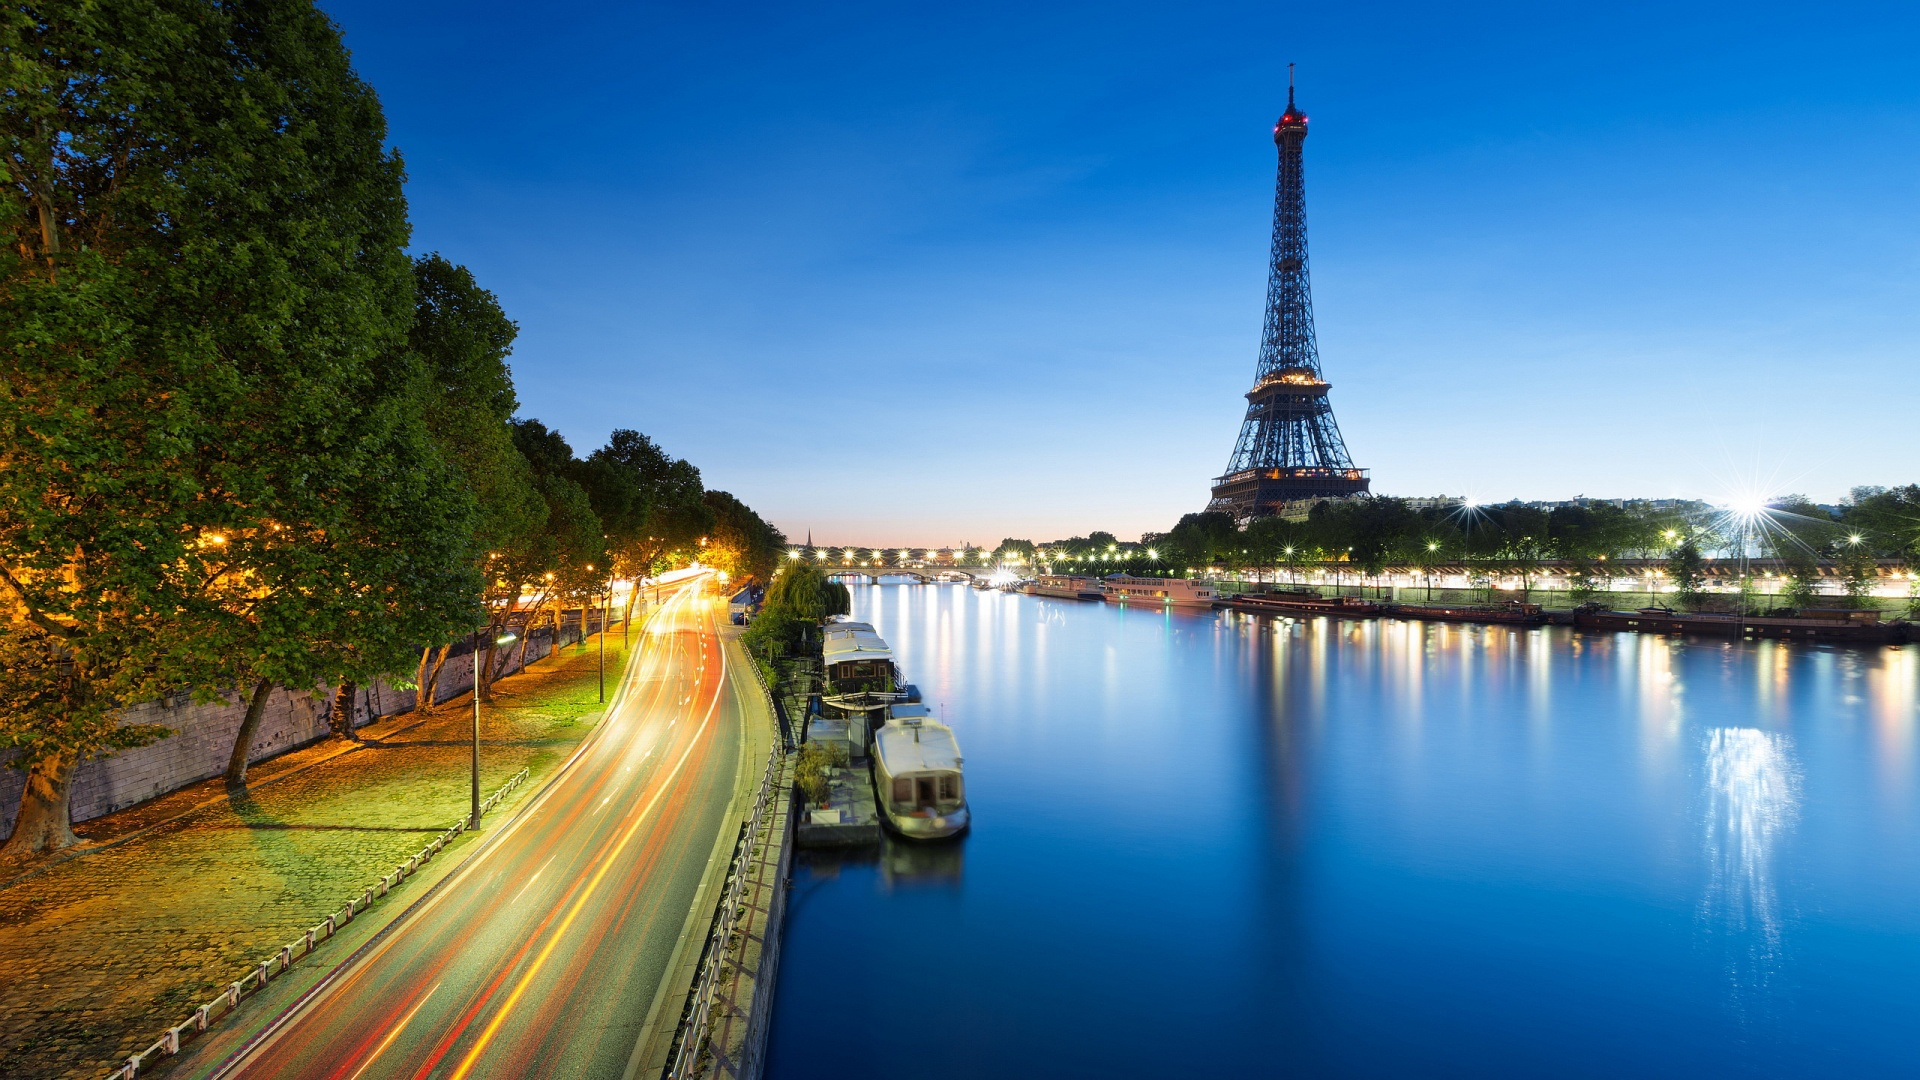 35 hd paris backgrounds the city of lights and romance for Immagini 1920x1080